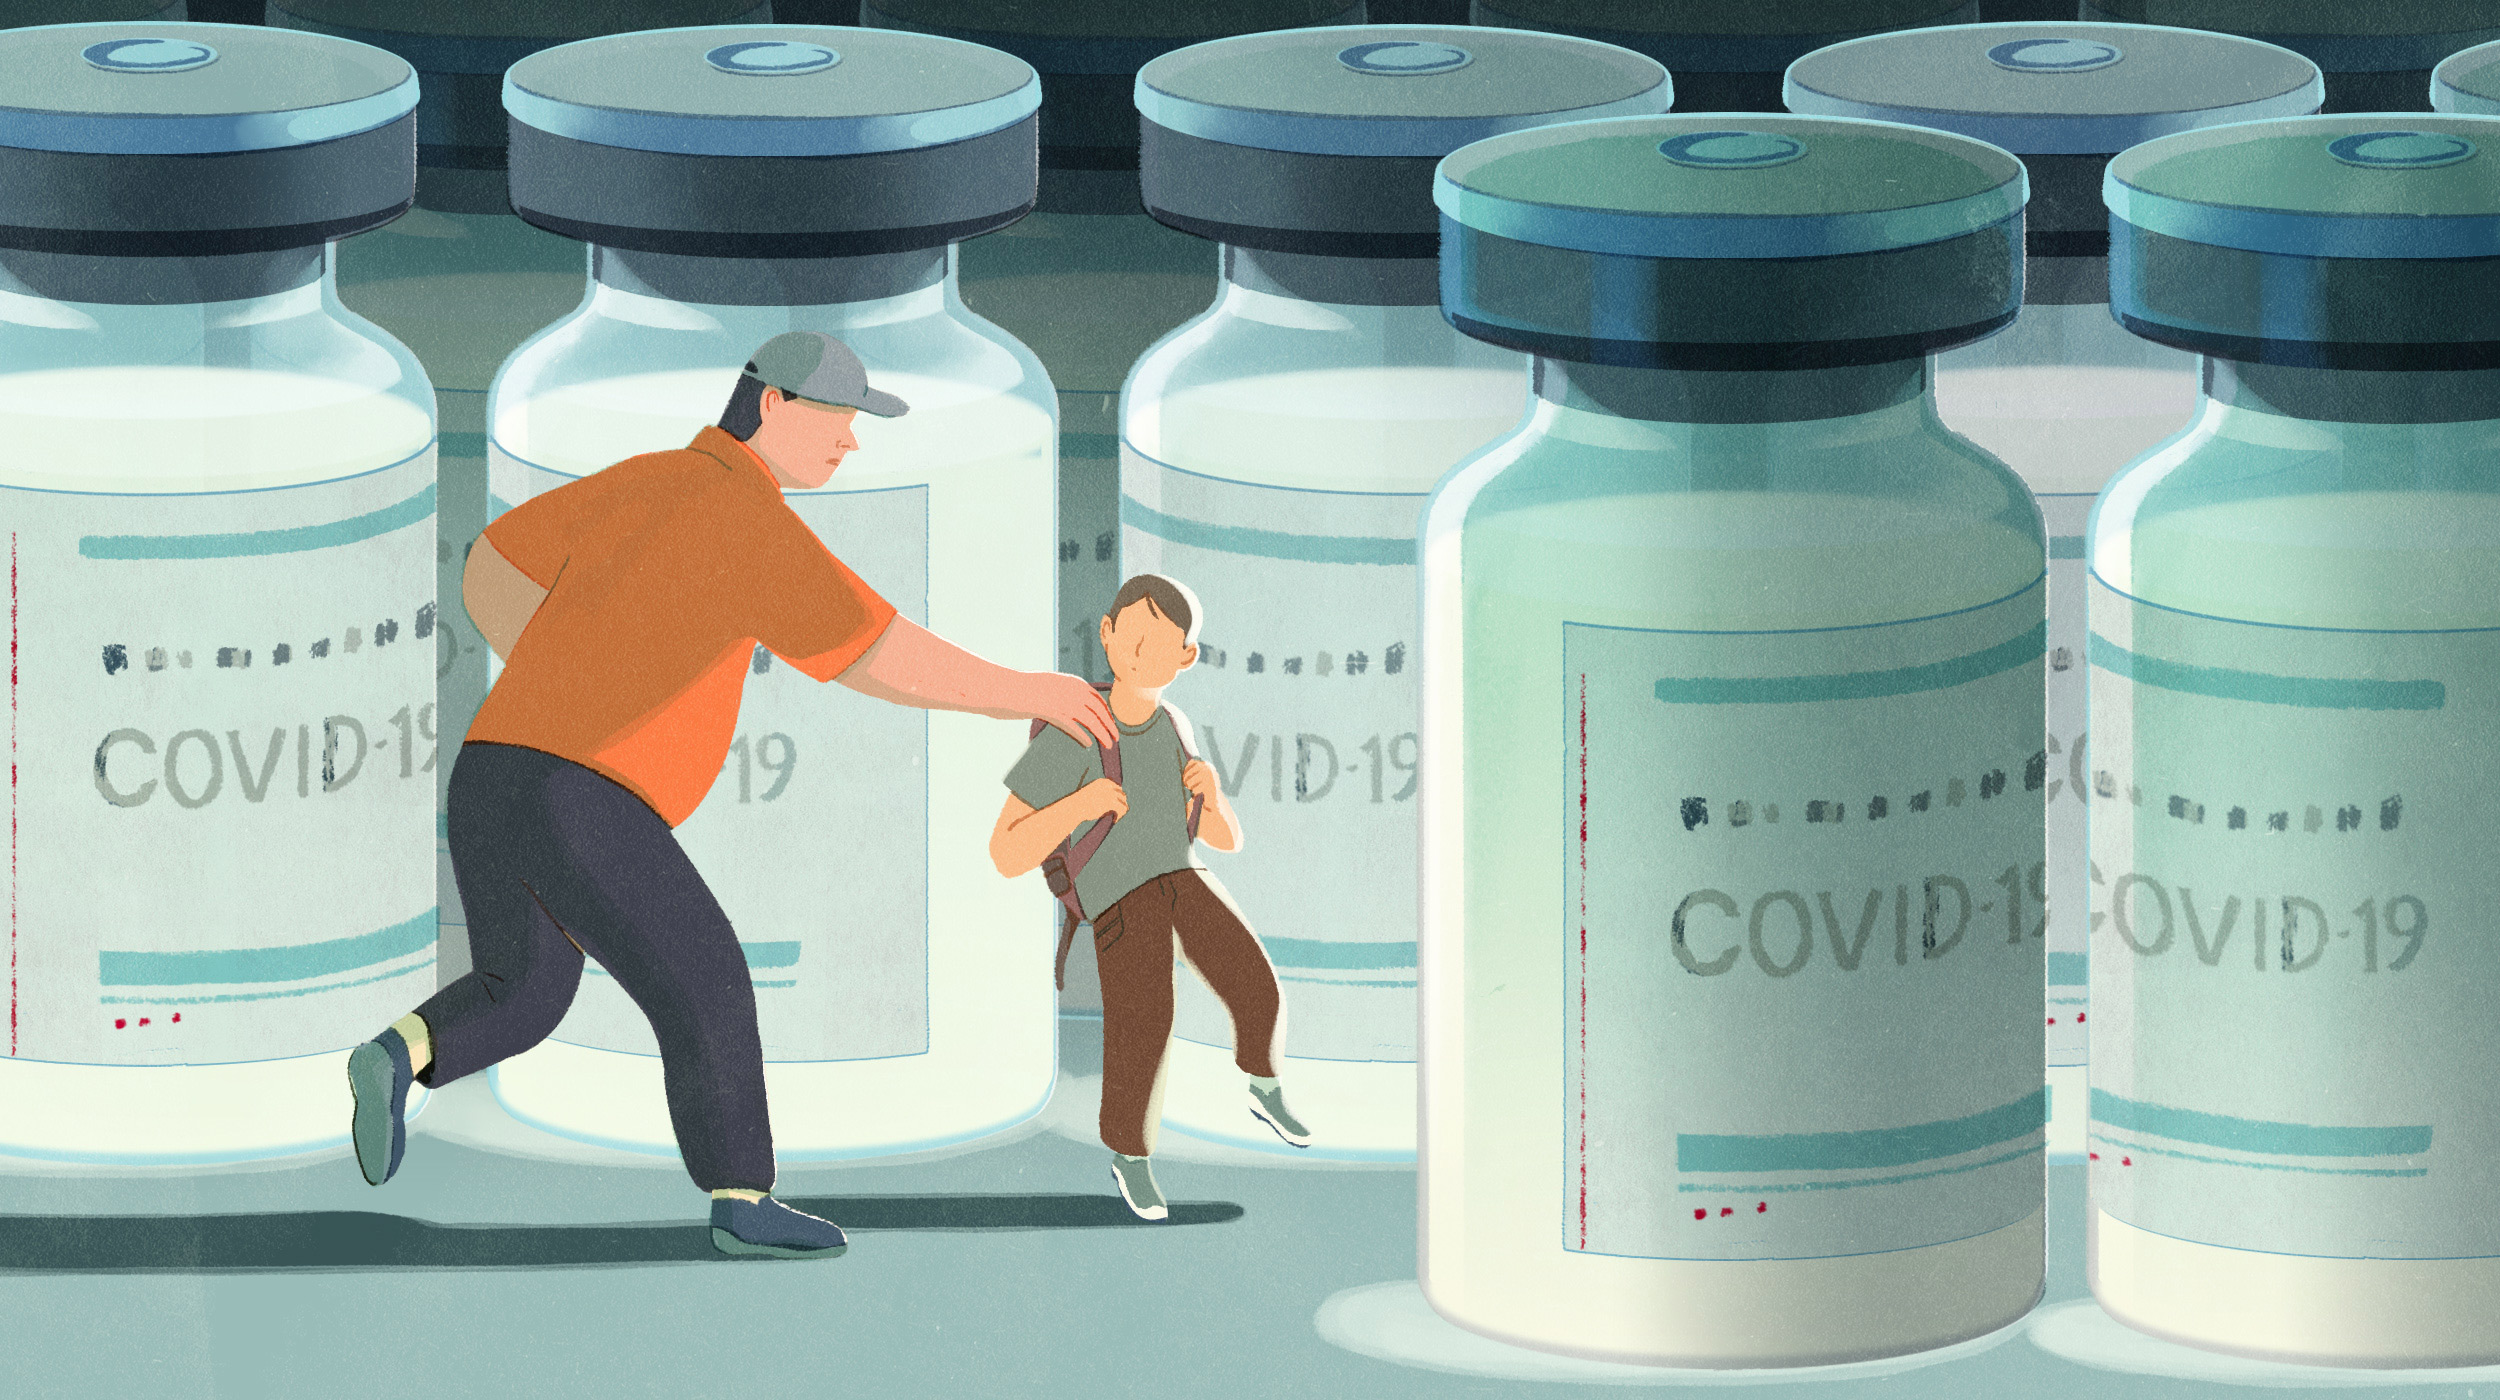 A Look At Decision-Making Responsibility And The COVID-19 Vaccine